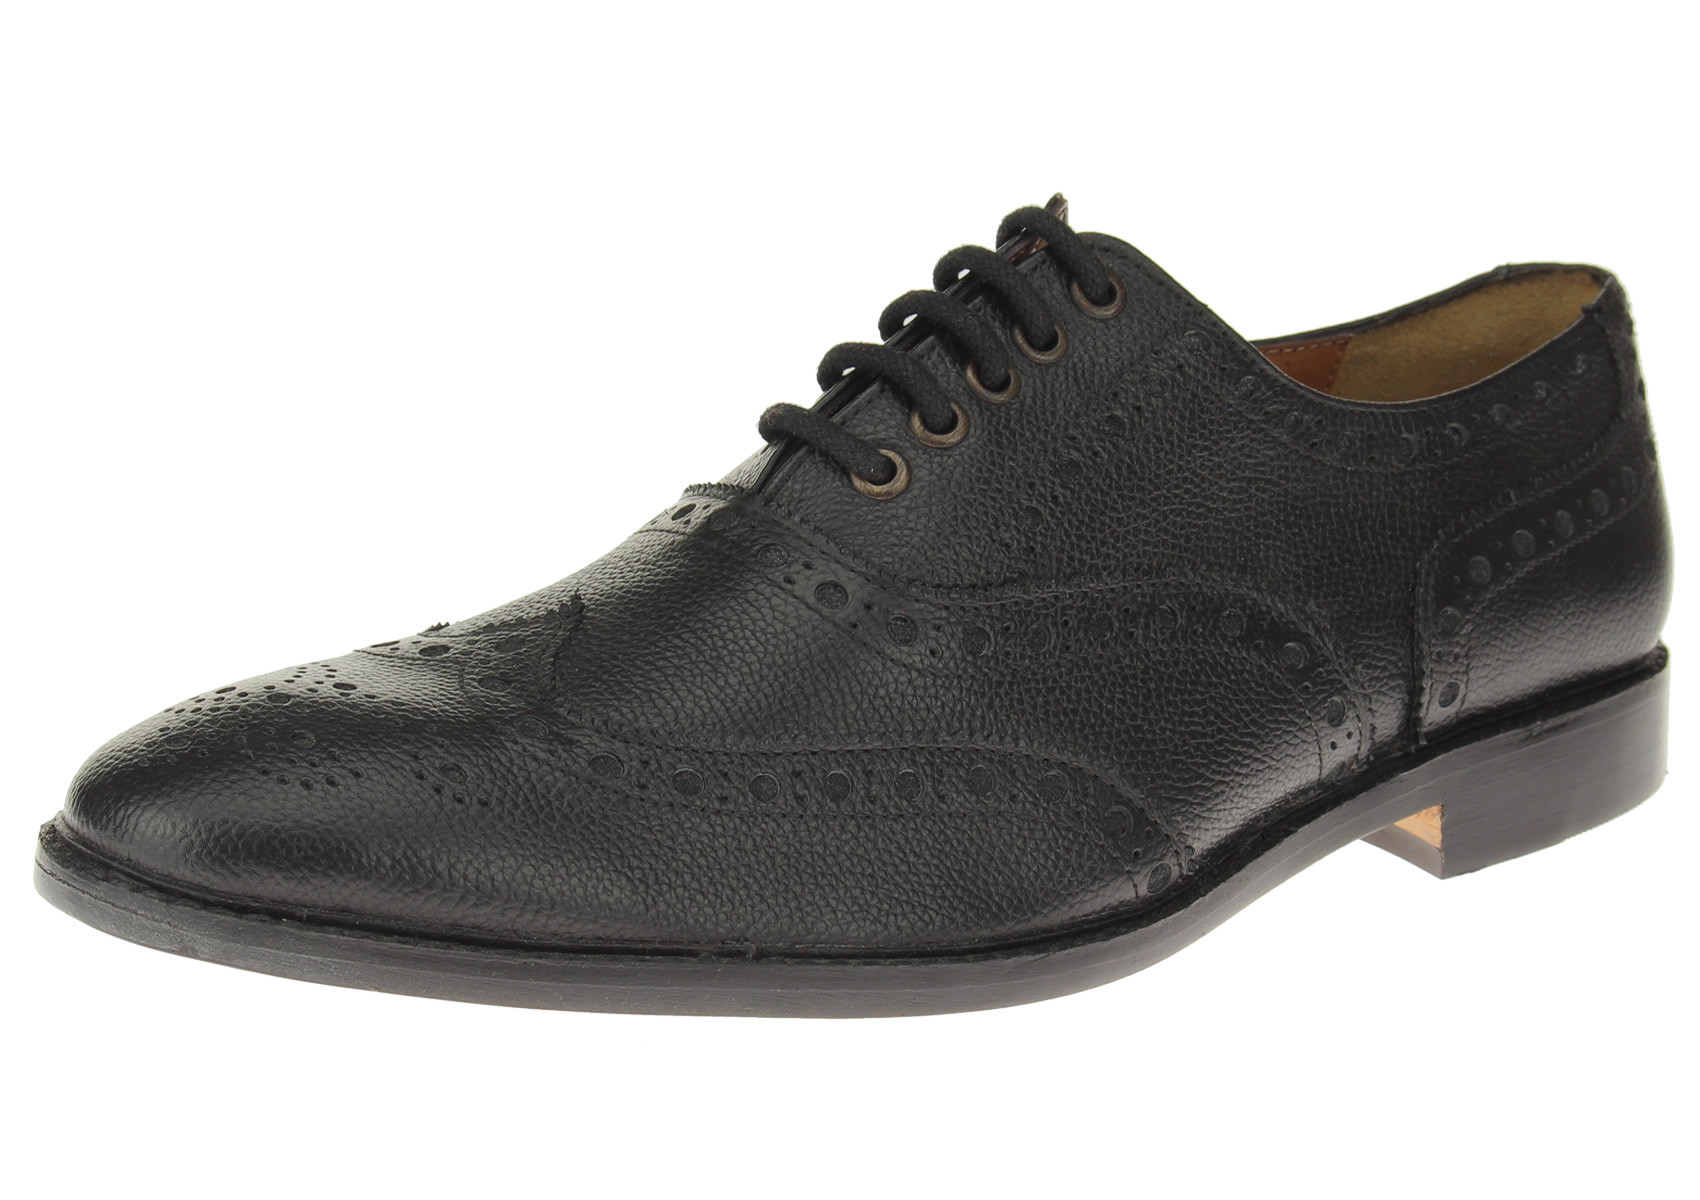 Mens Luciano Natazzi Full Leather Modern Wingtip Oxford